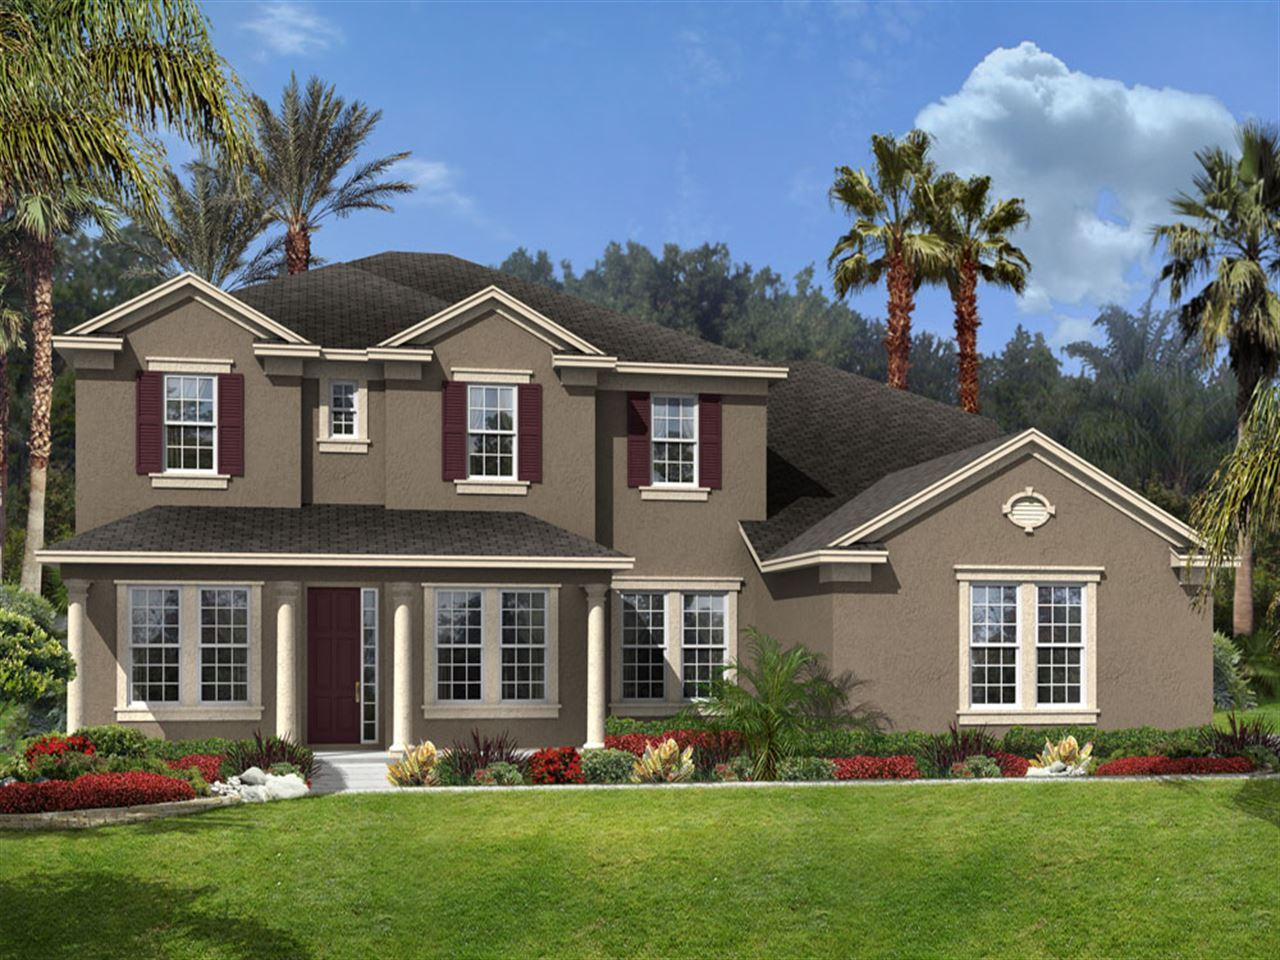 Ryland Home My Style Design Center Ryland Home My Style Design Center Ryland Homes